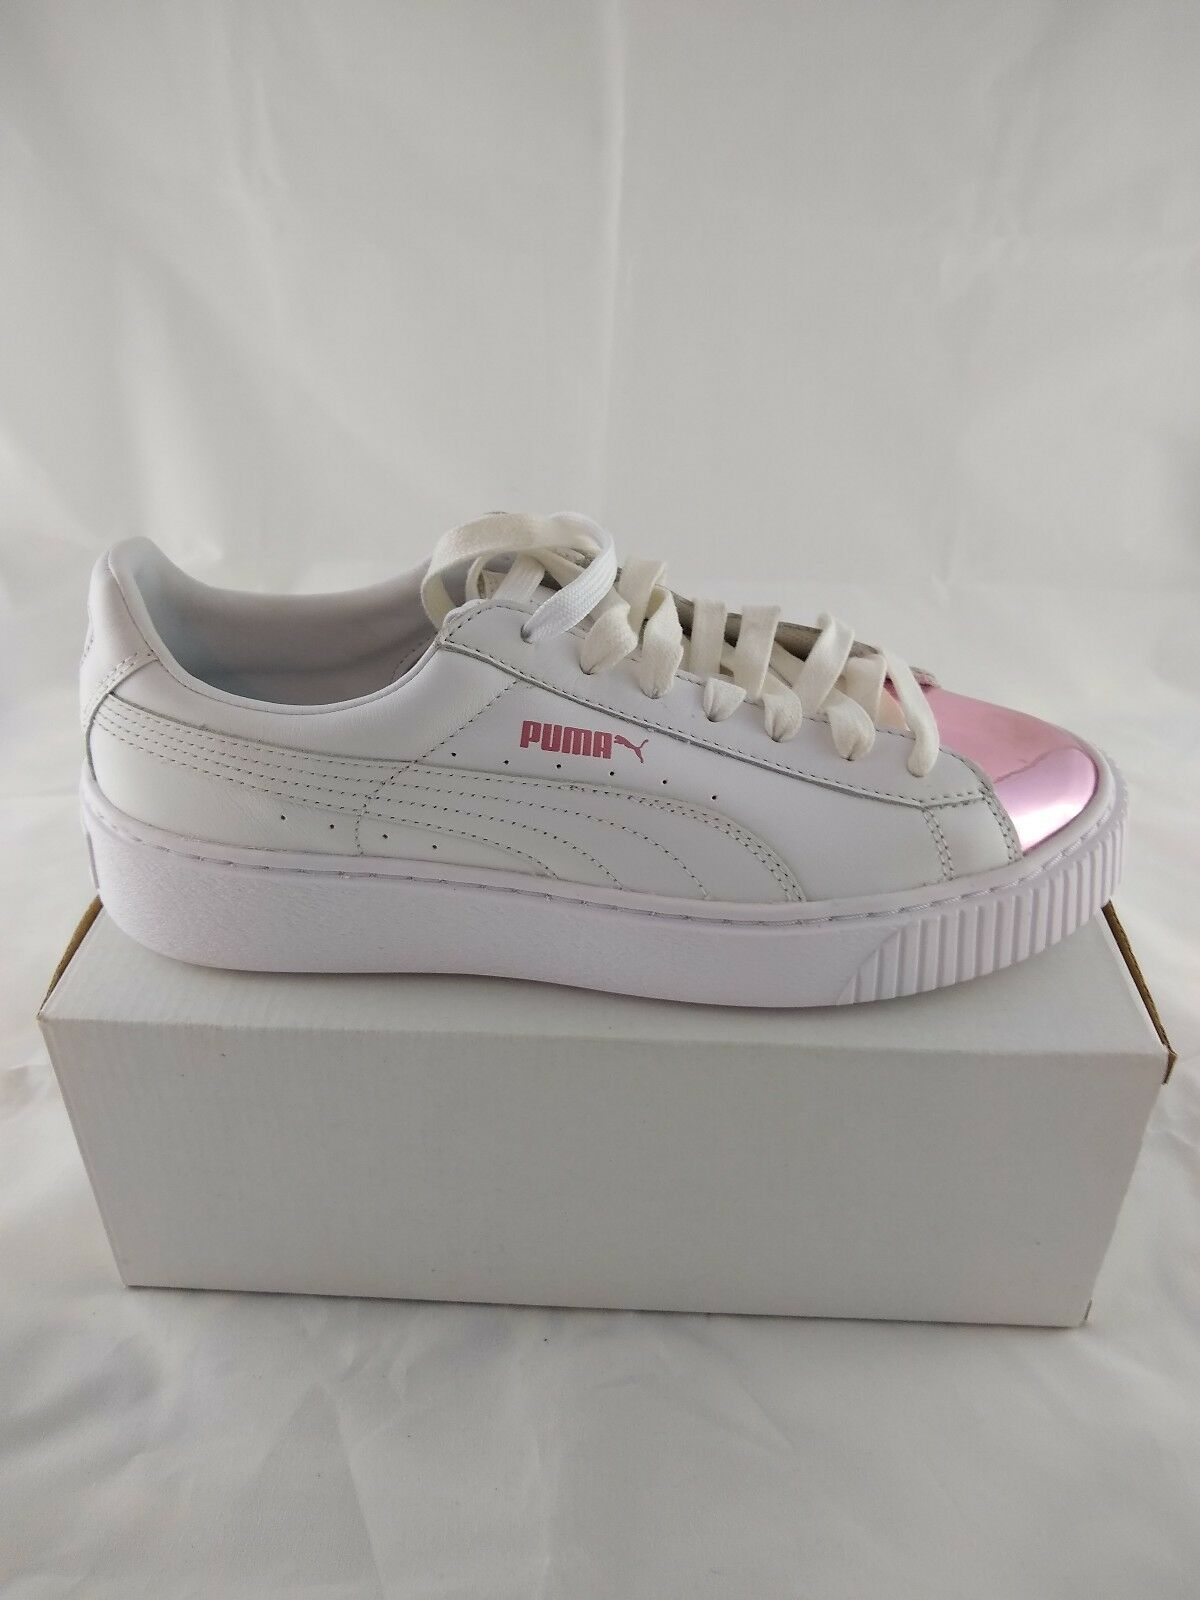 Women's Puma Basket Platiorm Metallic Low Top Lace Up Pink White Size 9 New